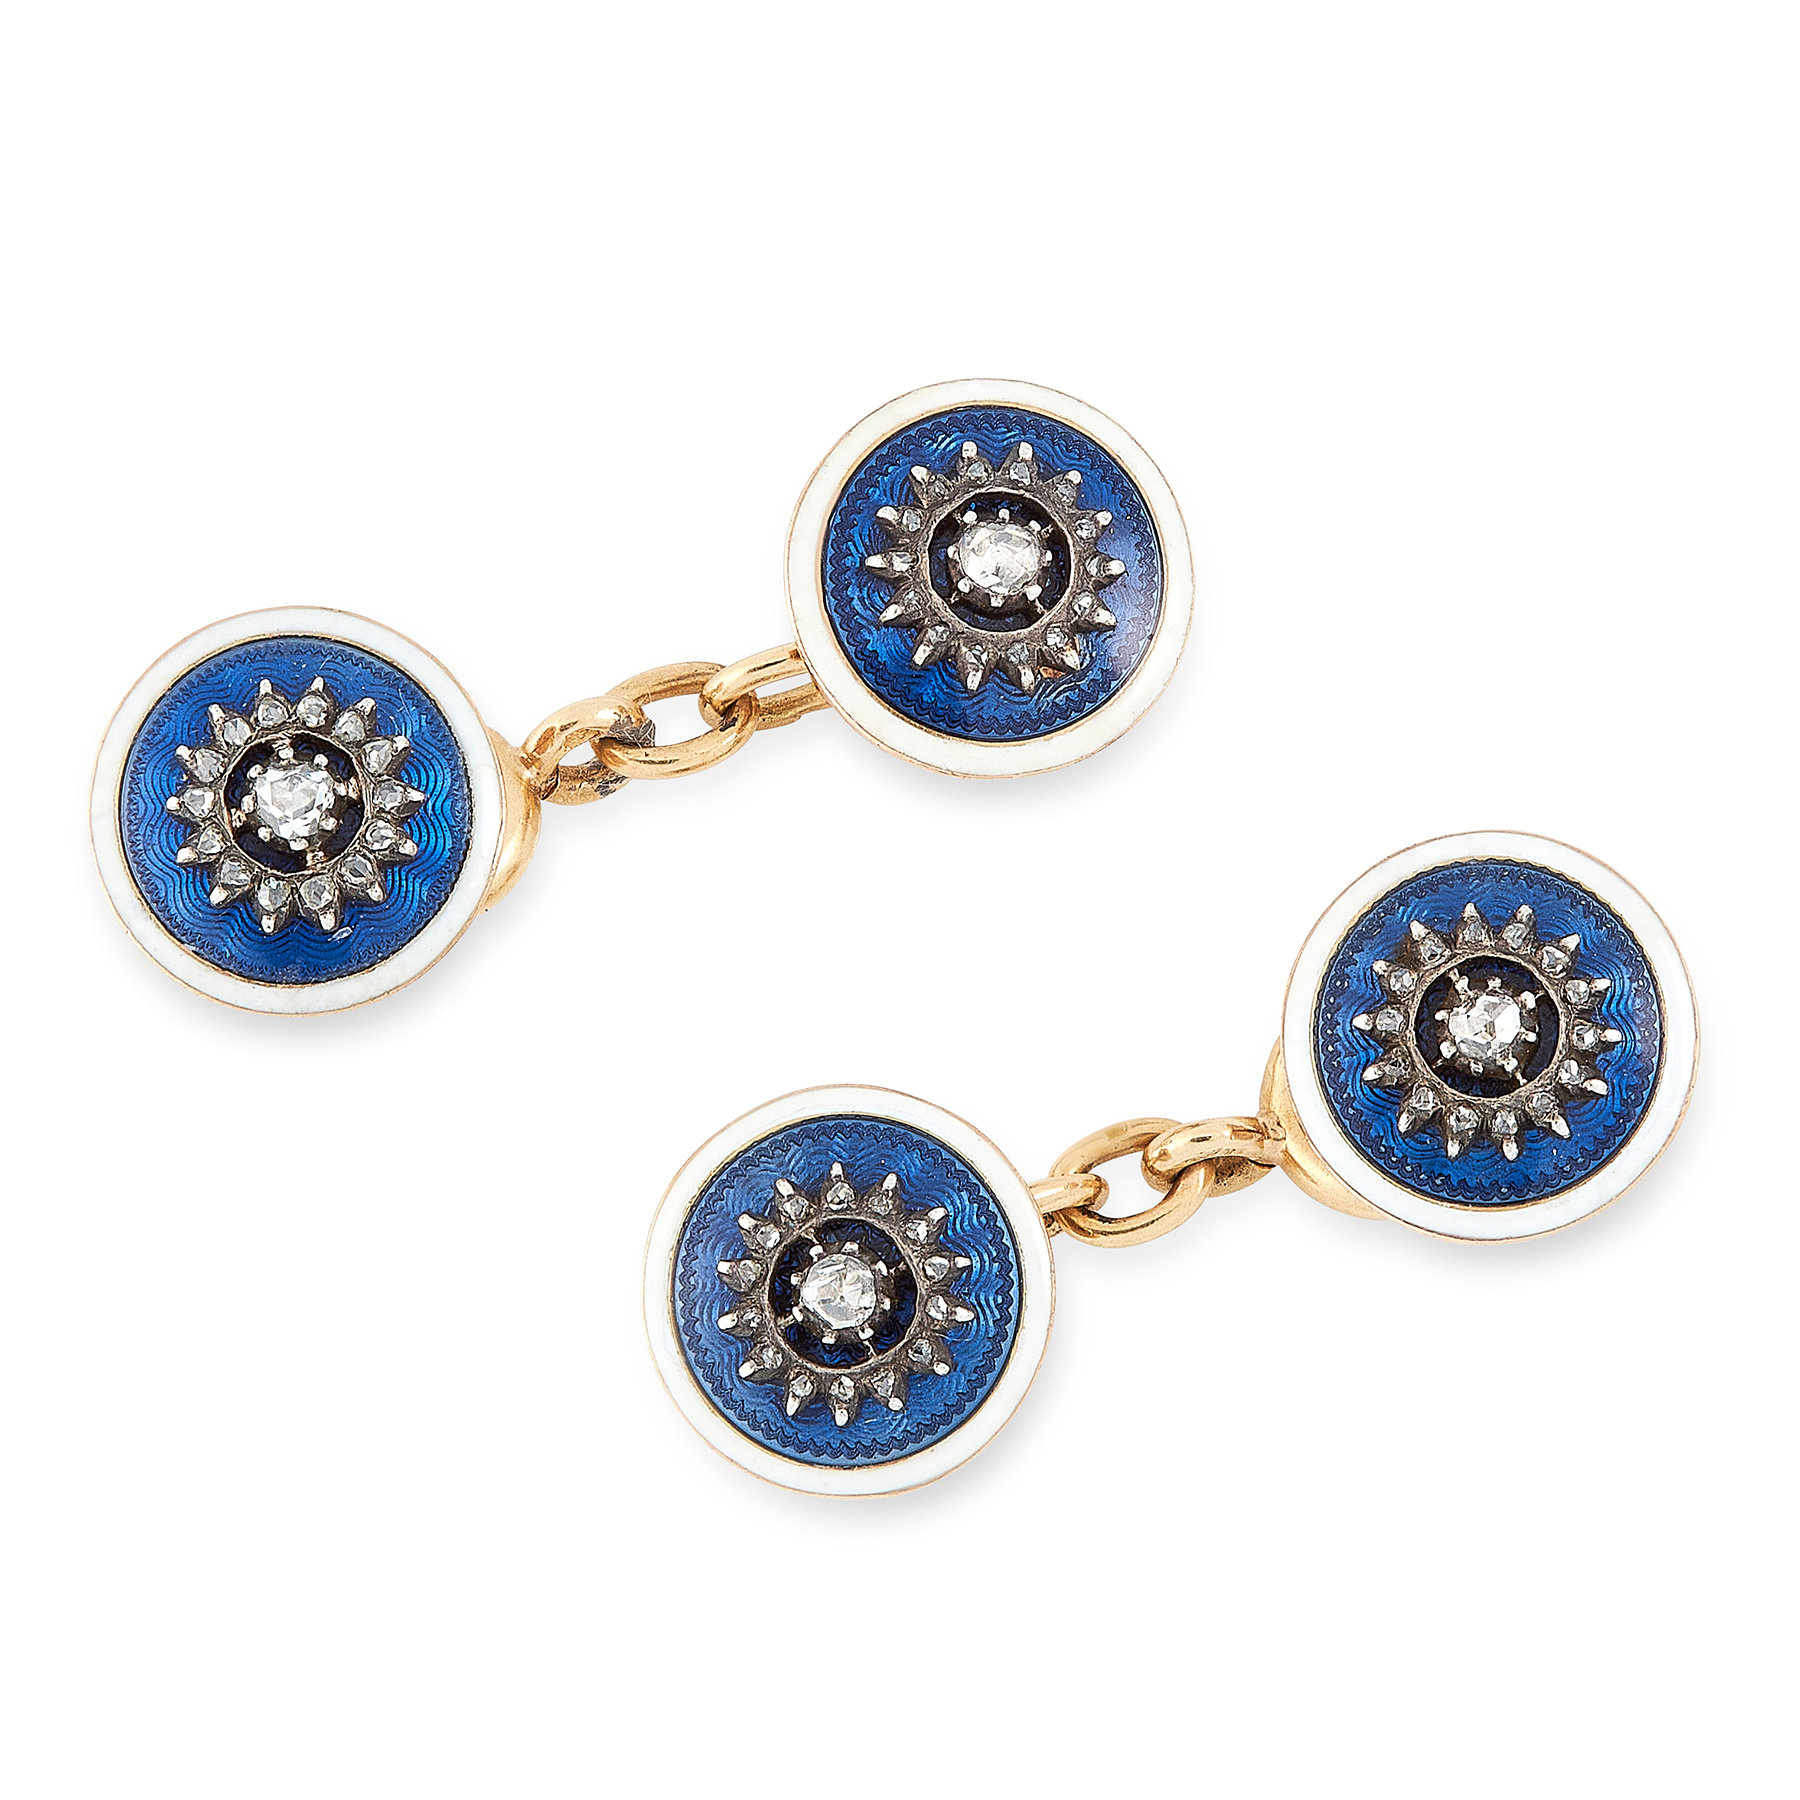 Lot 56 - A PAIR OF ENAMEL AND DIAMOND CUFFLINKS, CARTIER in 18ct yellow gold, each formed of two circular